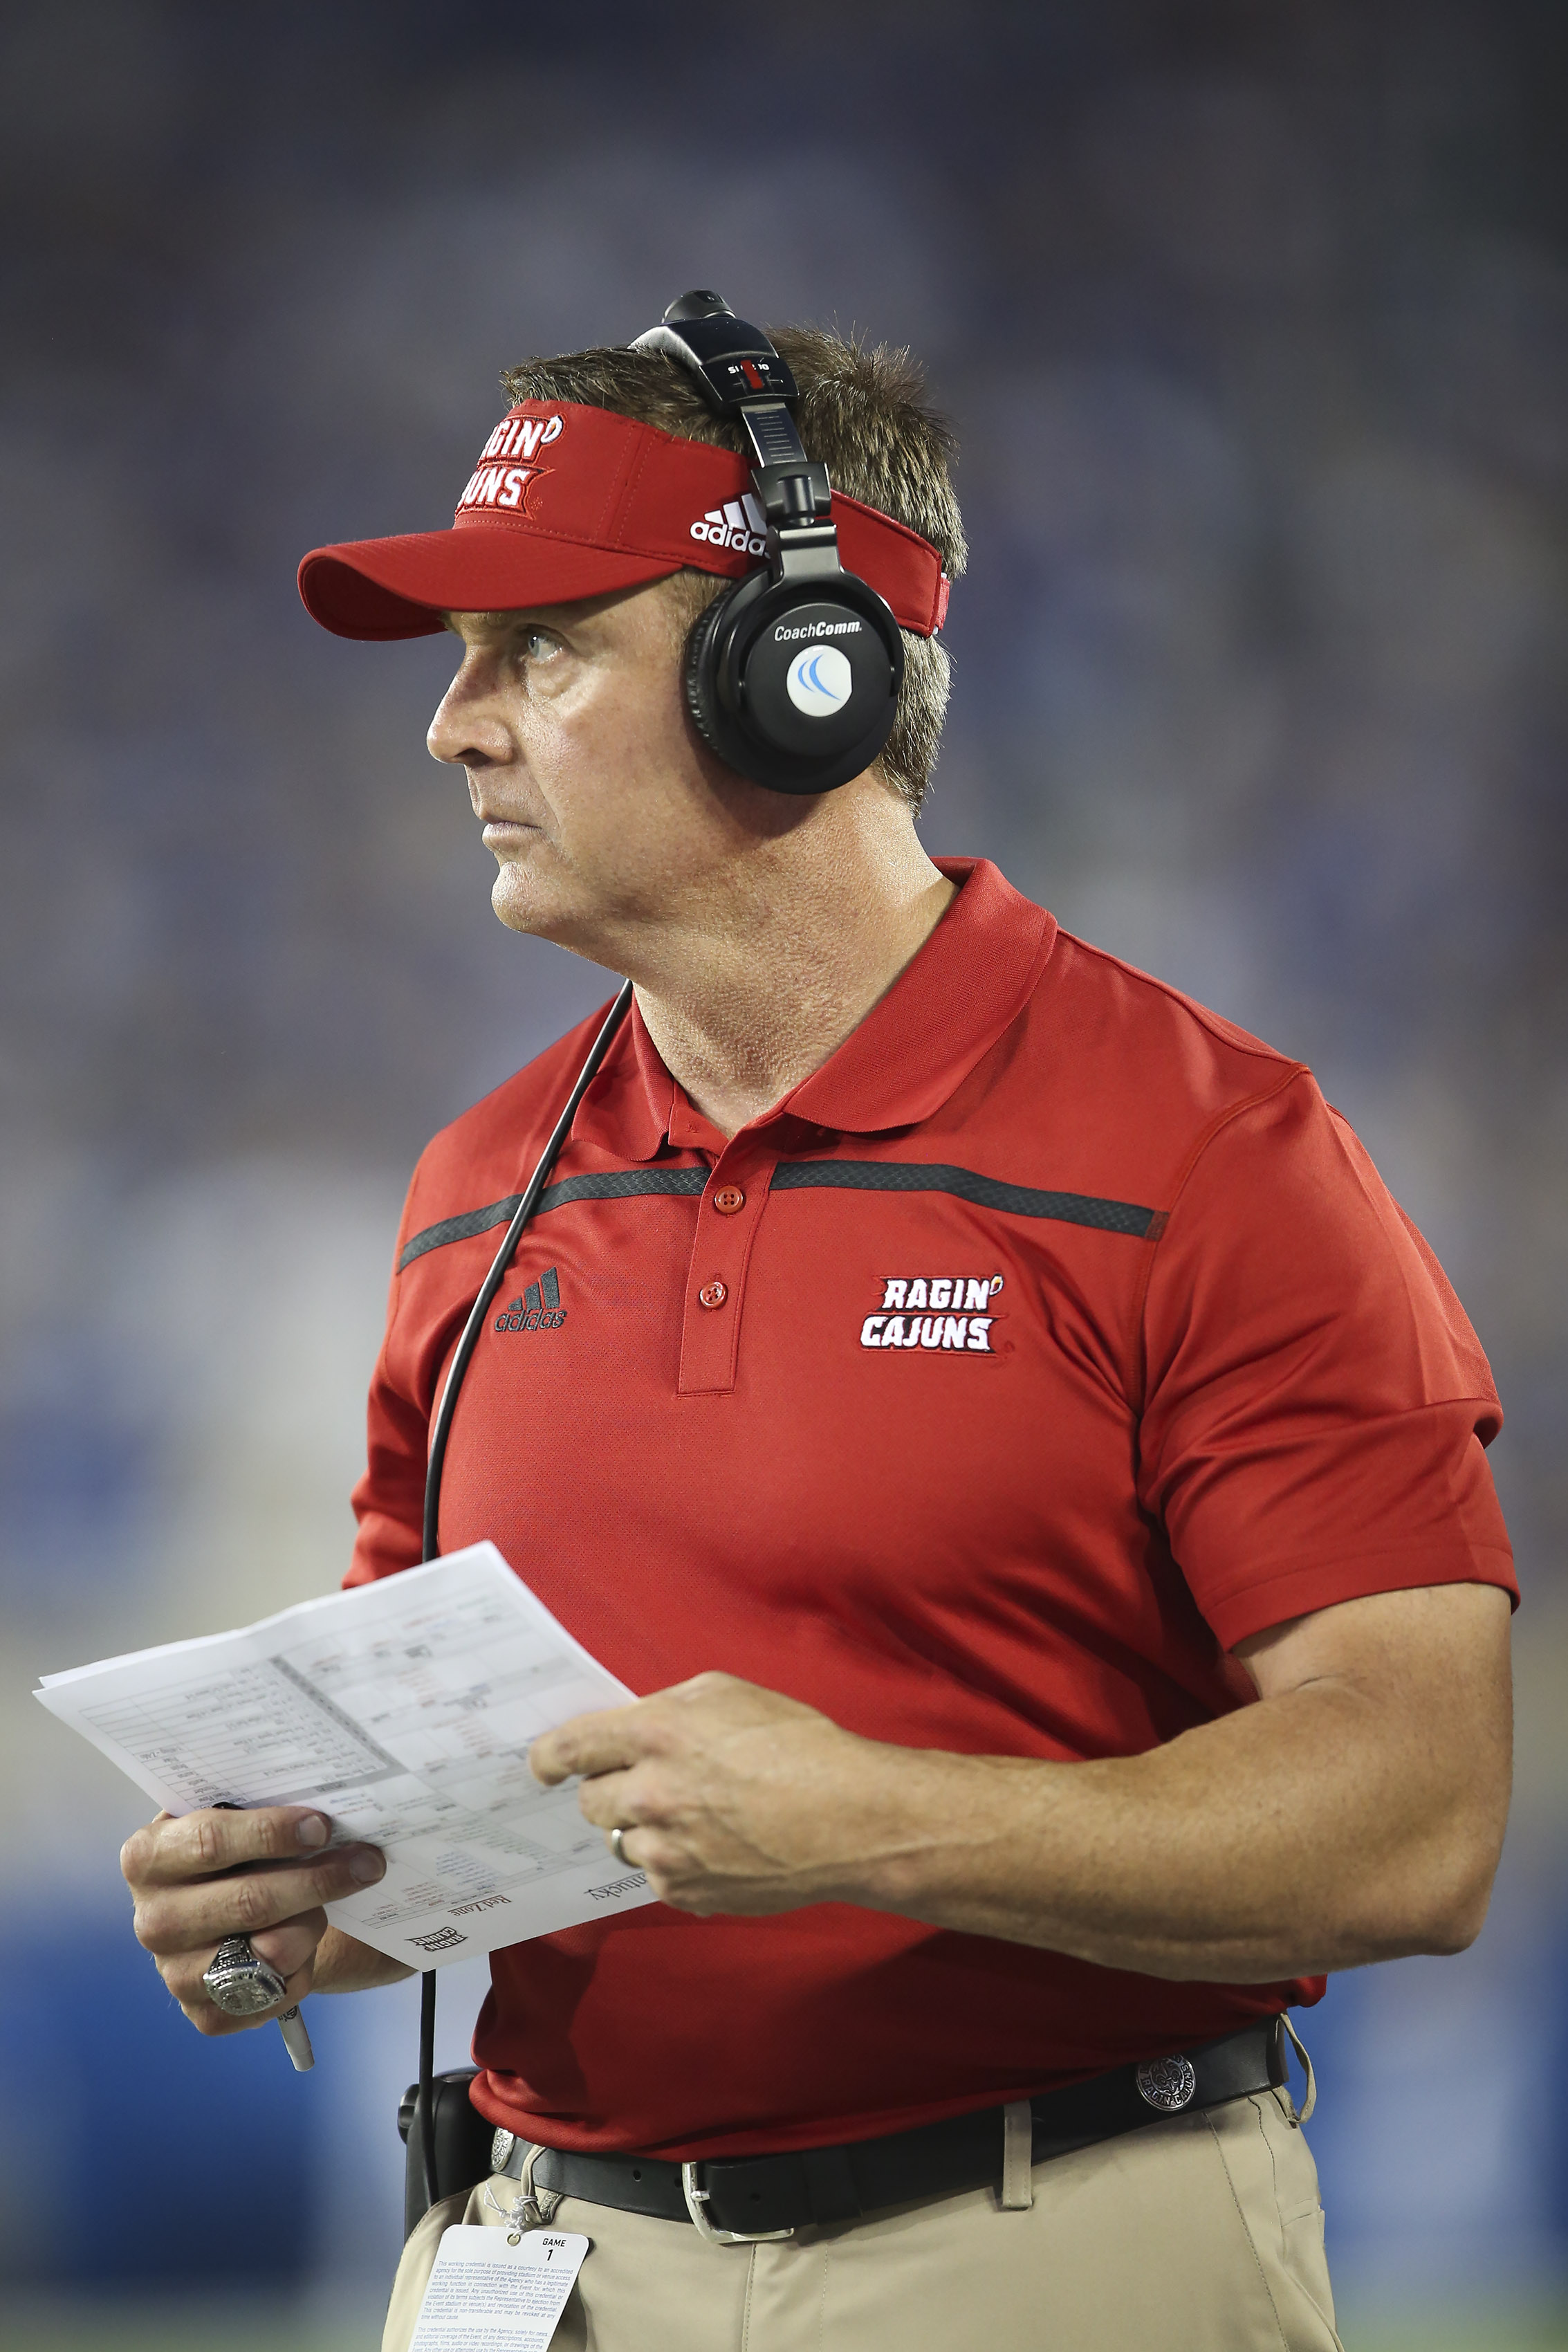 Louisiana-Lafayette head coach Mark Hudspeth watches his team from the sidelines during the first half against Kentucky in an NCAA college football game in Lexington, Ky., Saturday, Sept. 5, 2015. Kentucky won the game, 40-33. (AP Photo/David Stephenson)